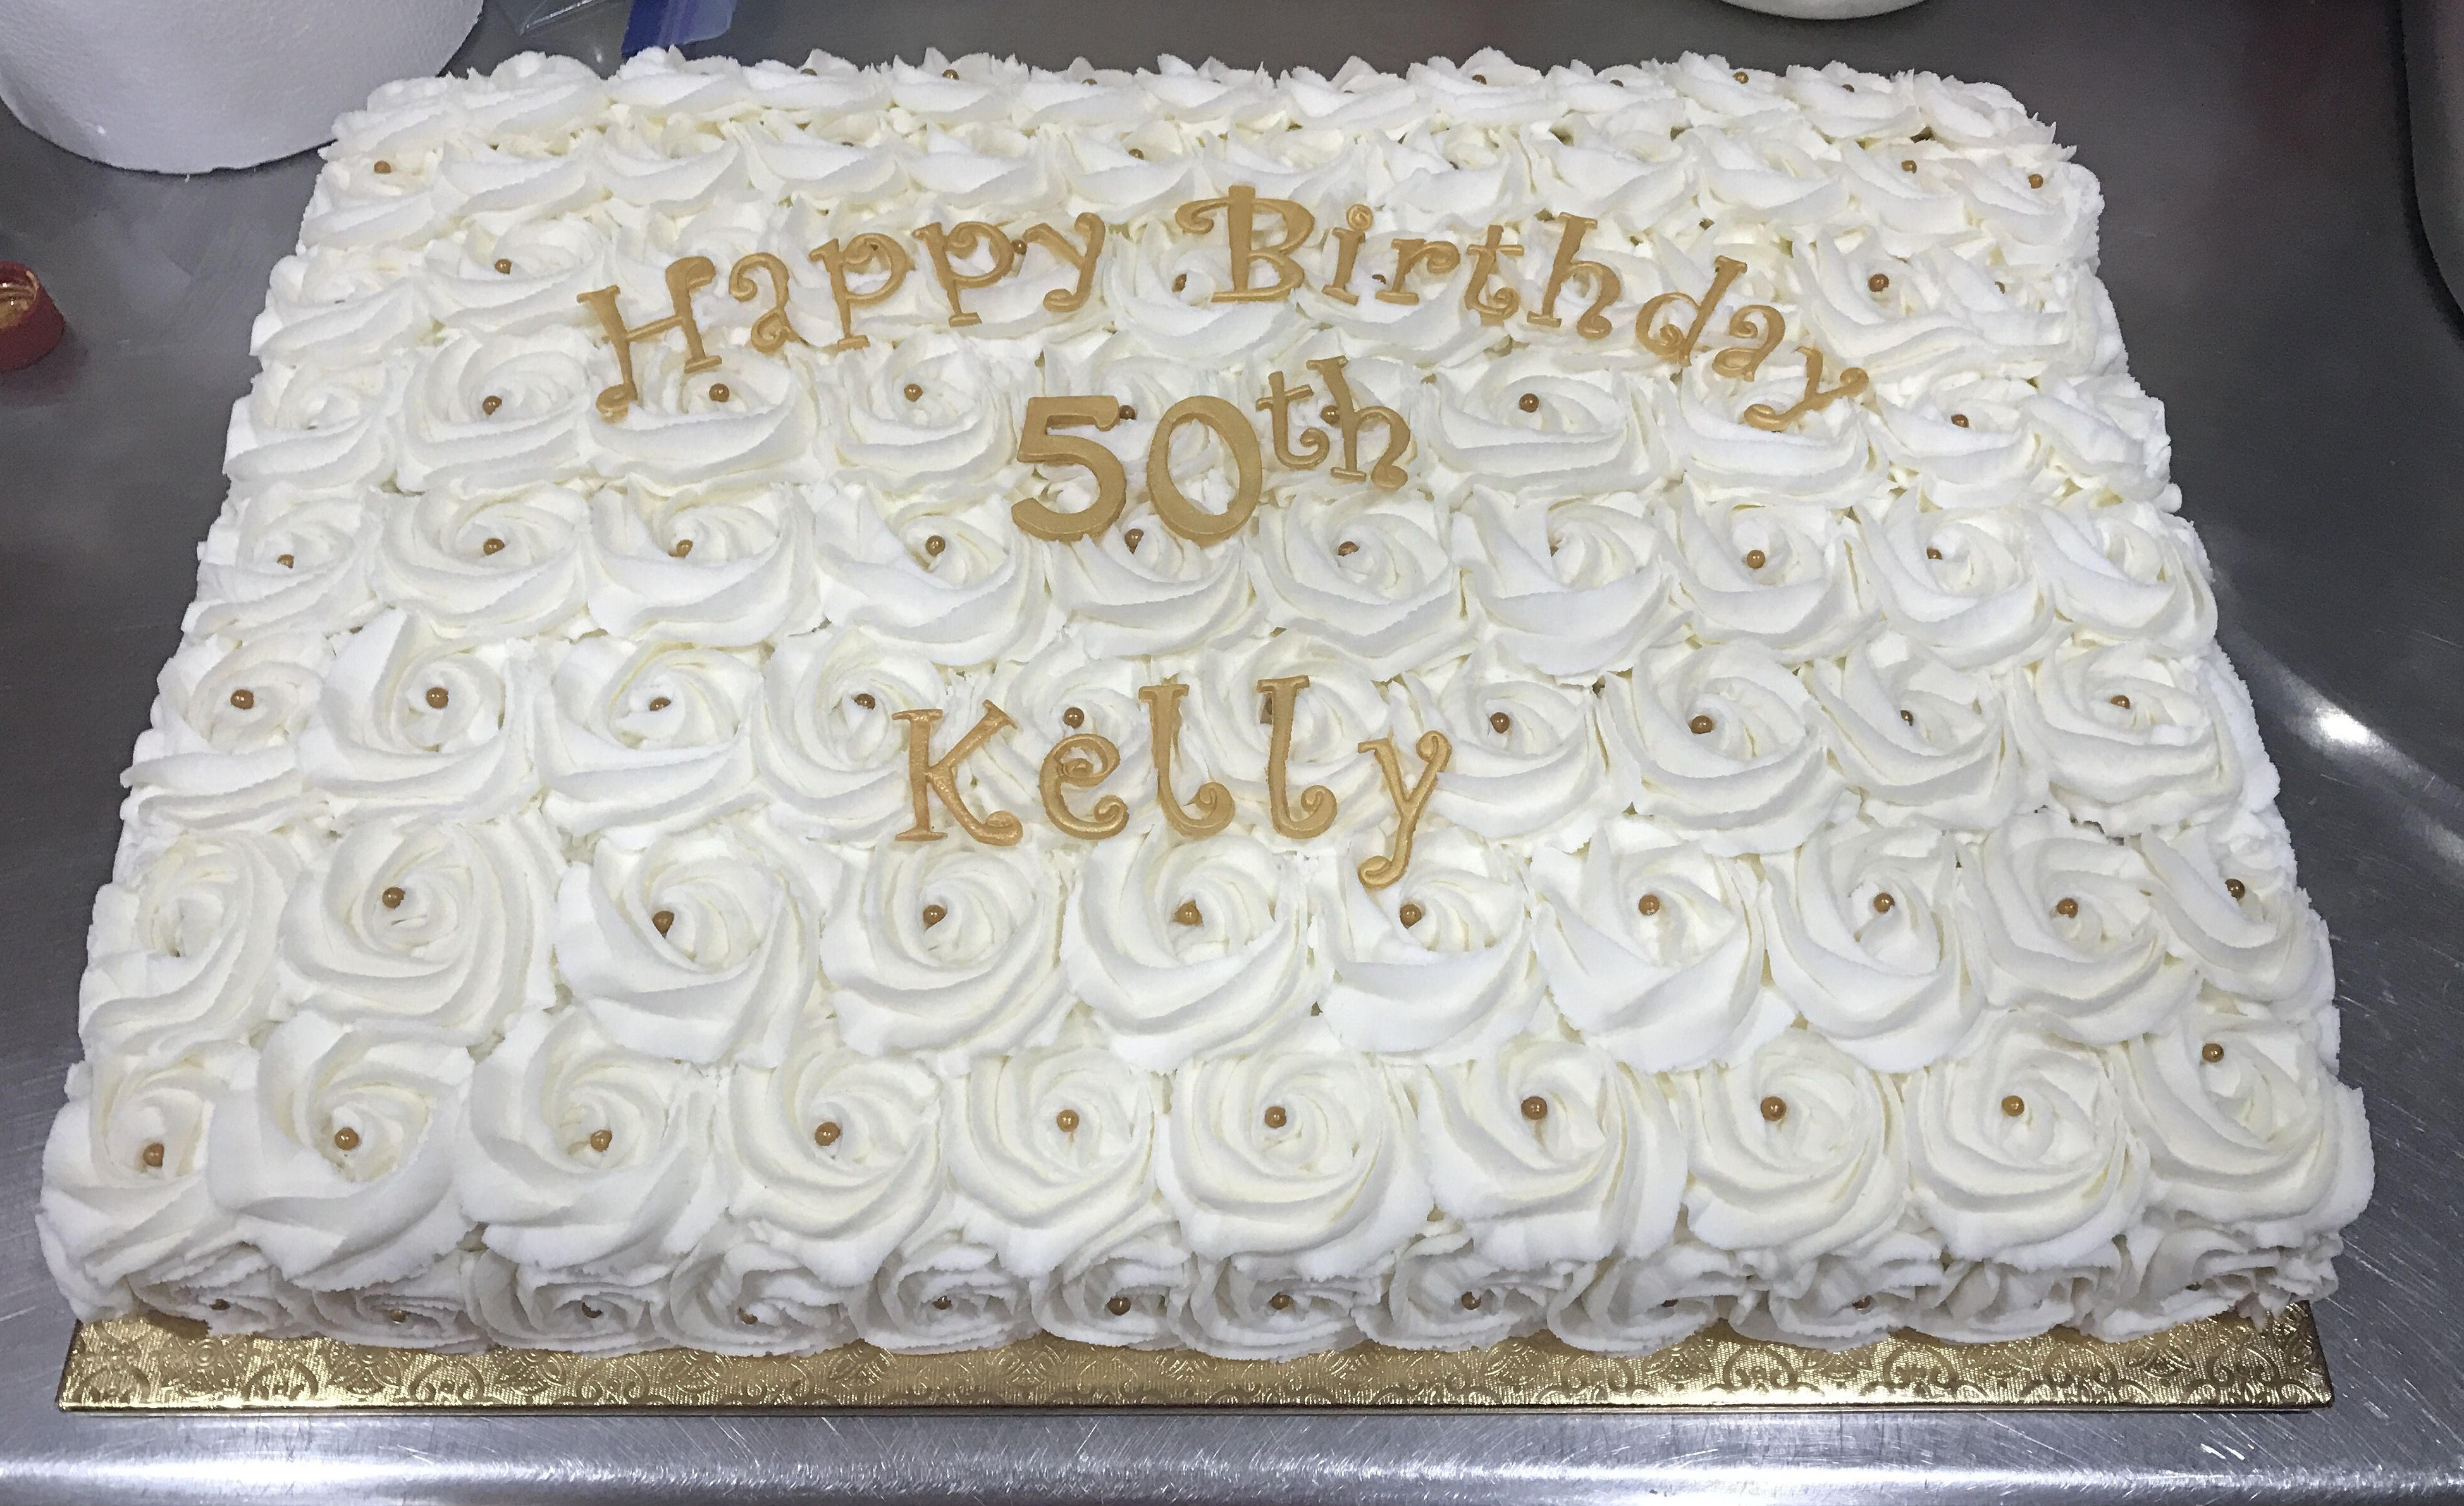 50th birthday rosettes sheet cake Sweet Therapy by Kim Pinterest